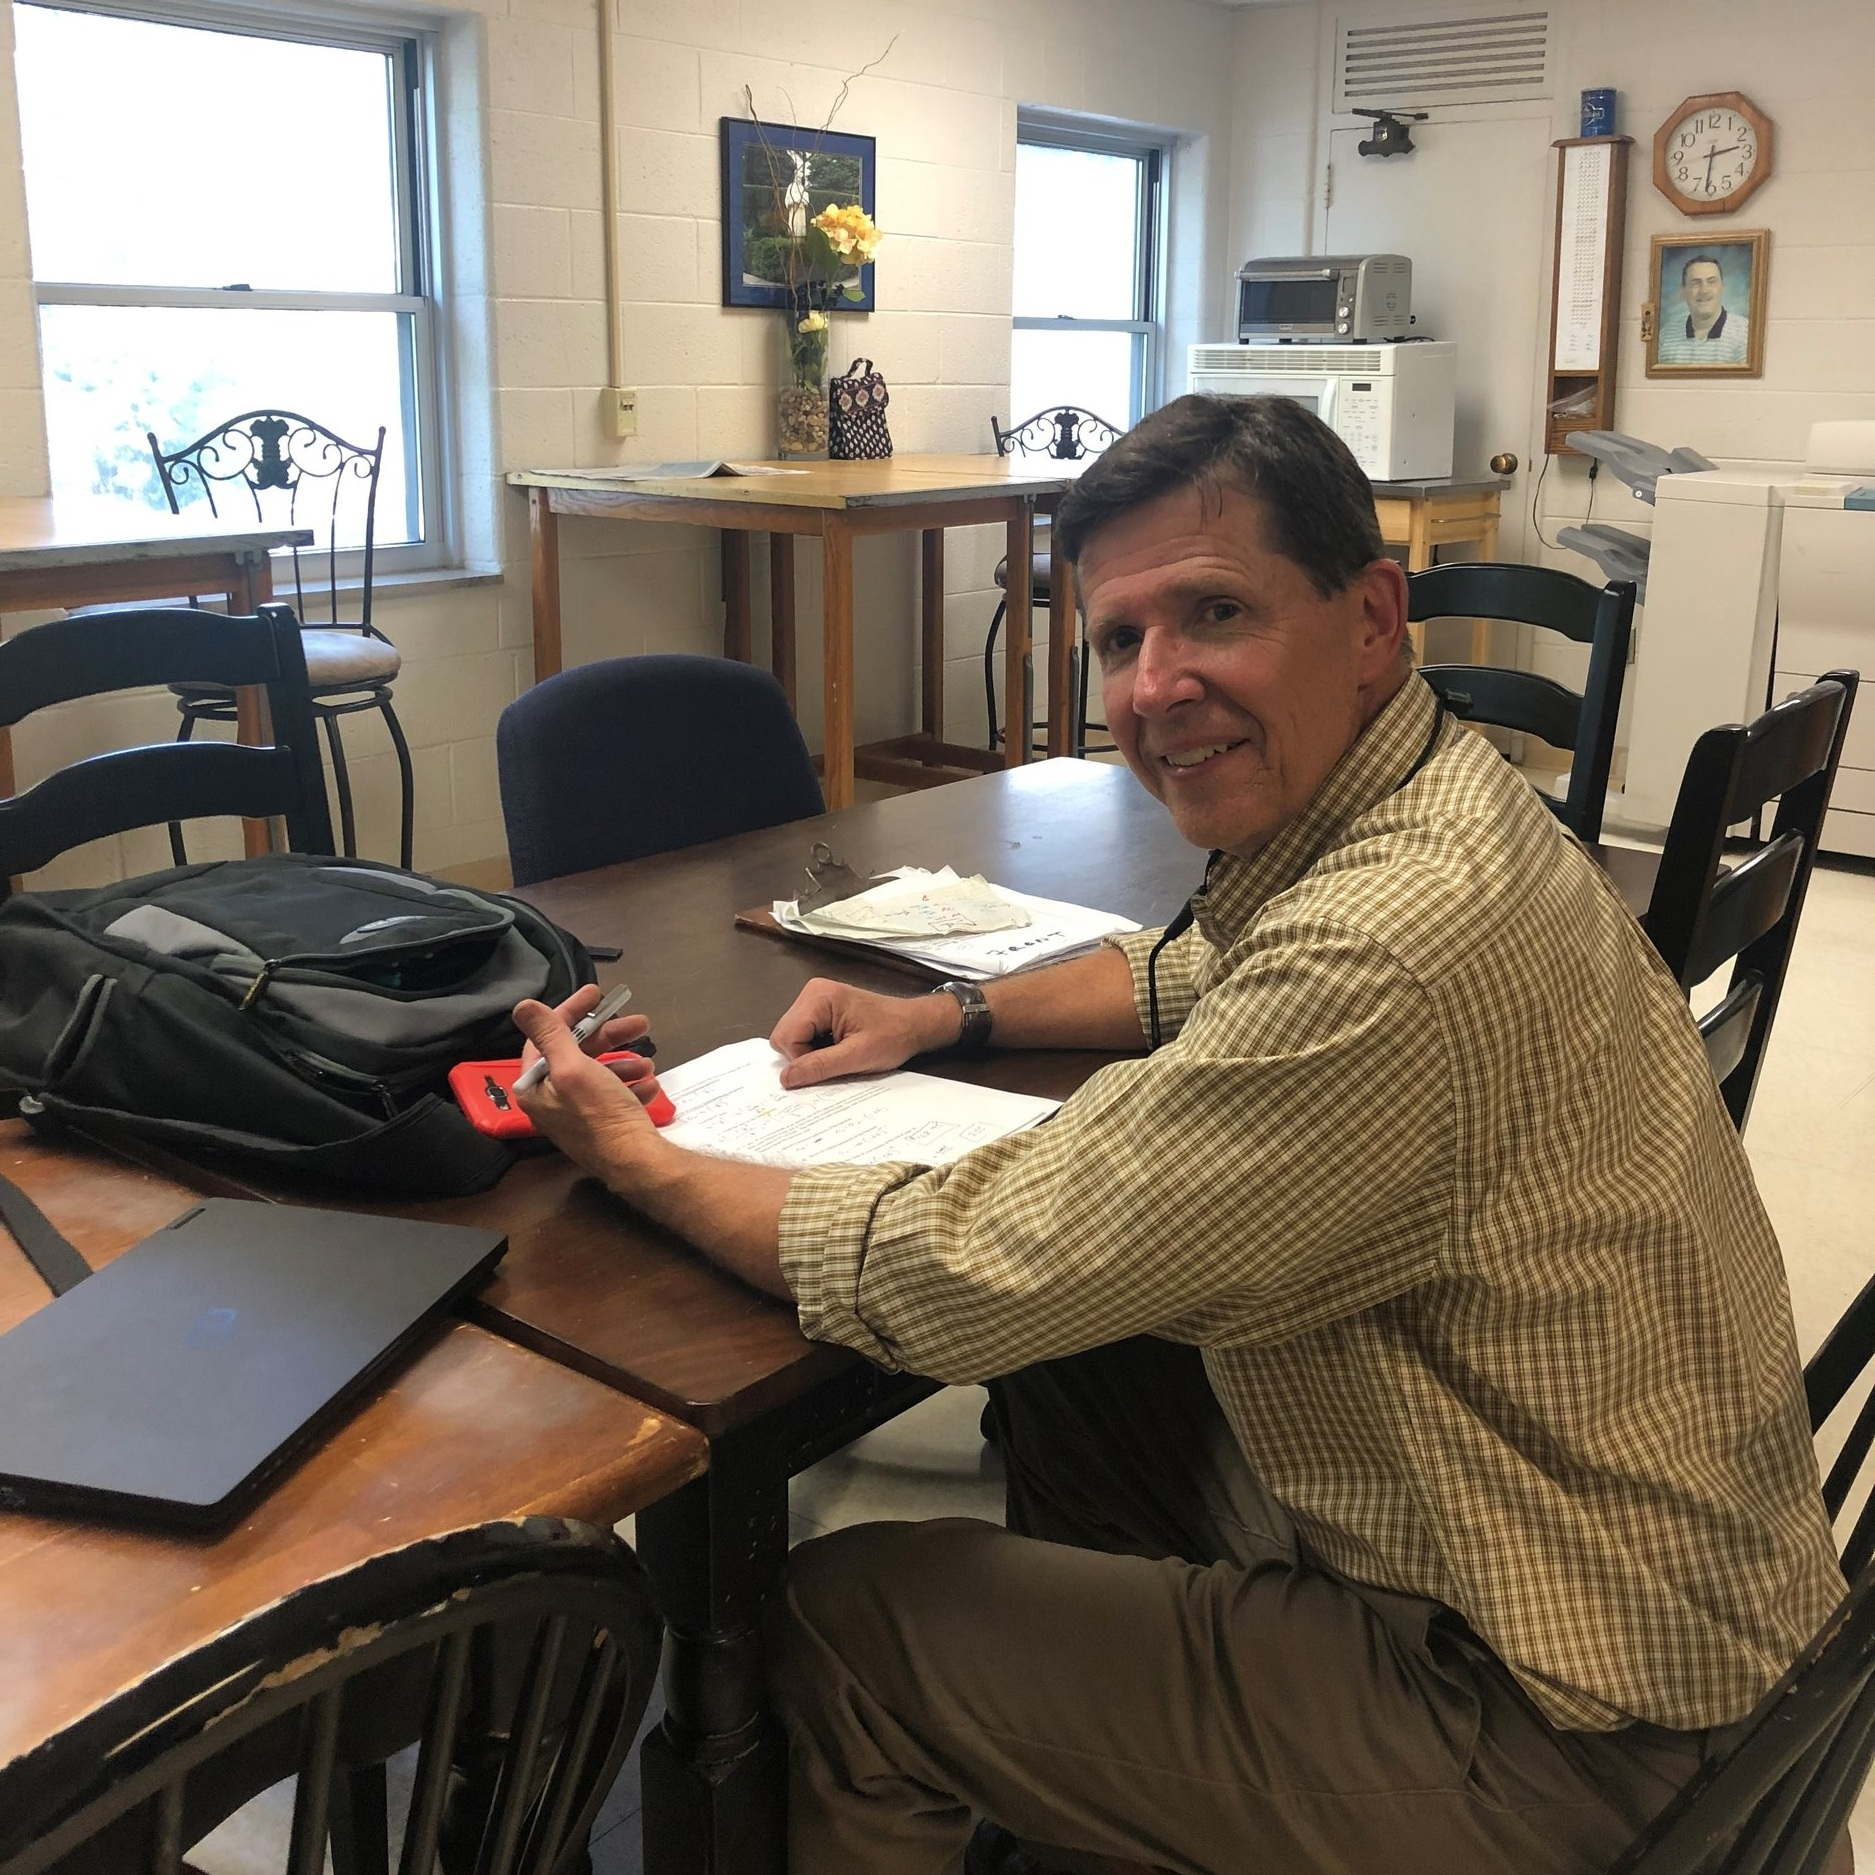 Mr. Prugh grading tests in the teacher's lounge  by Matt Jackson